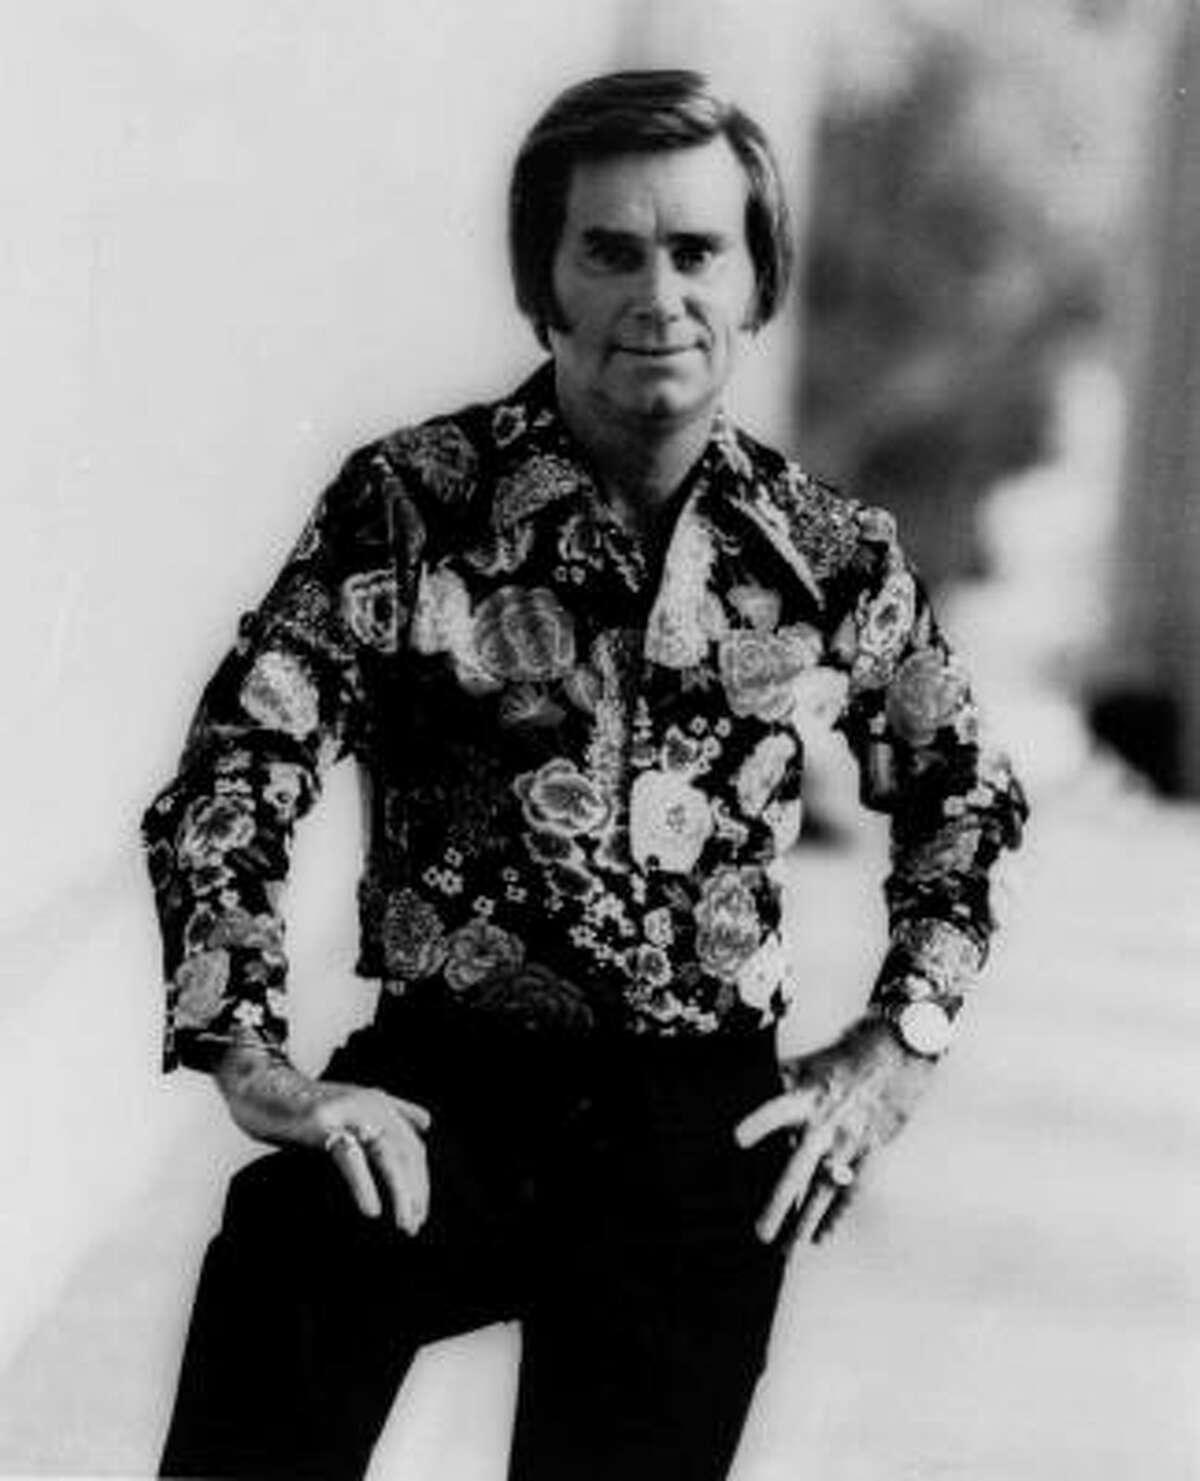 This publicity still of George Jones was taken in June 1977.